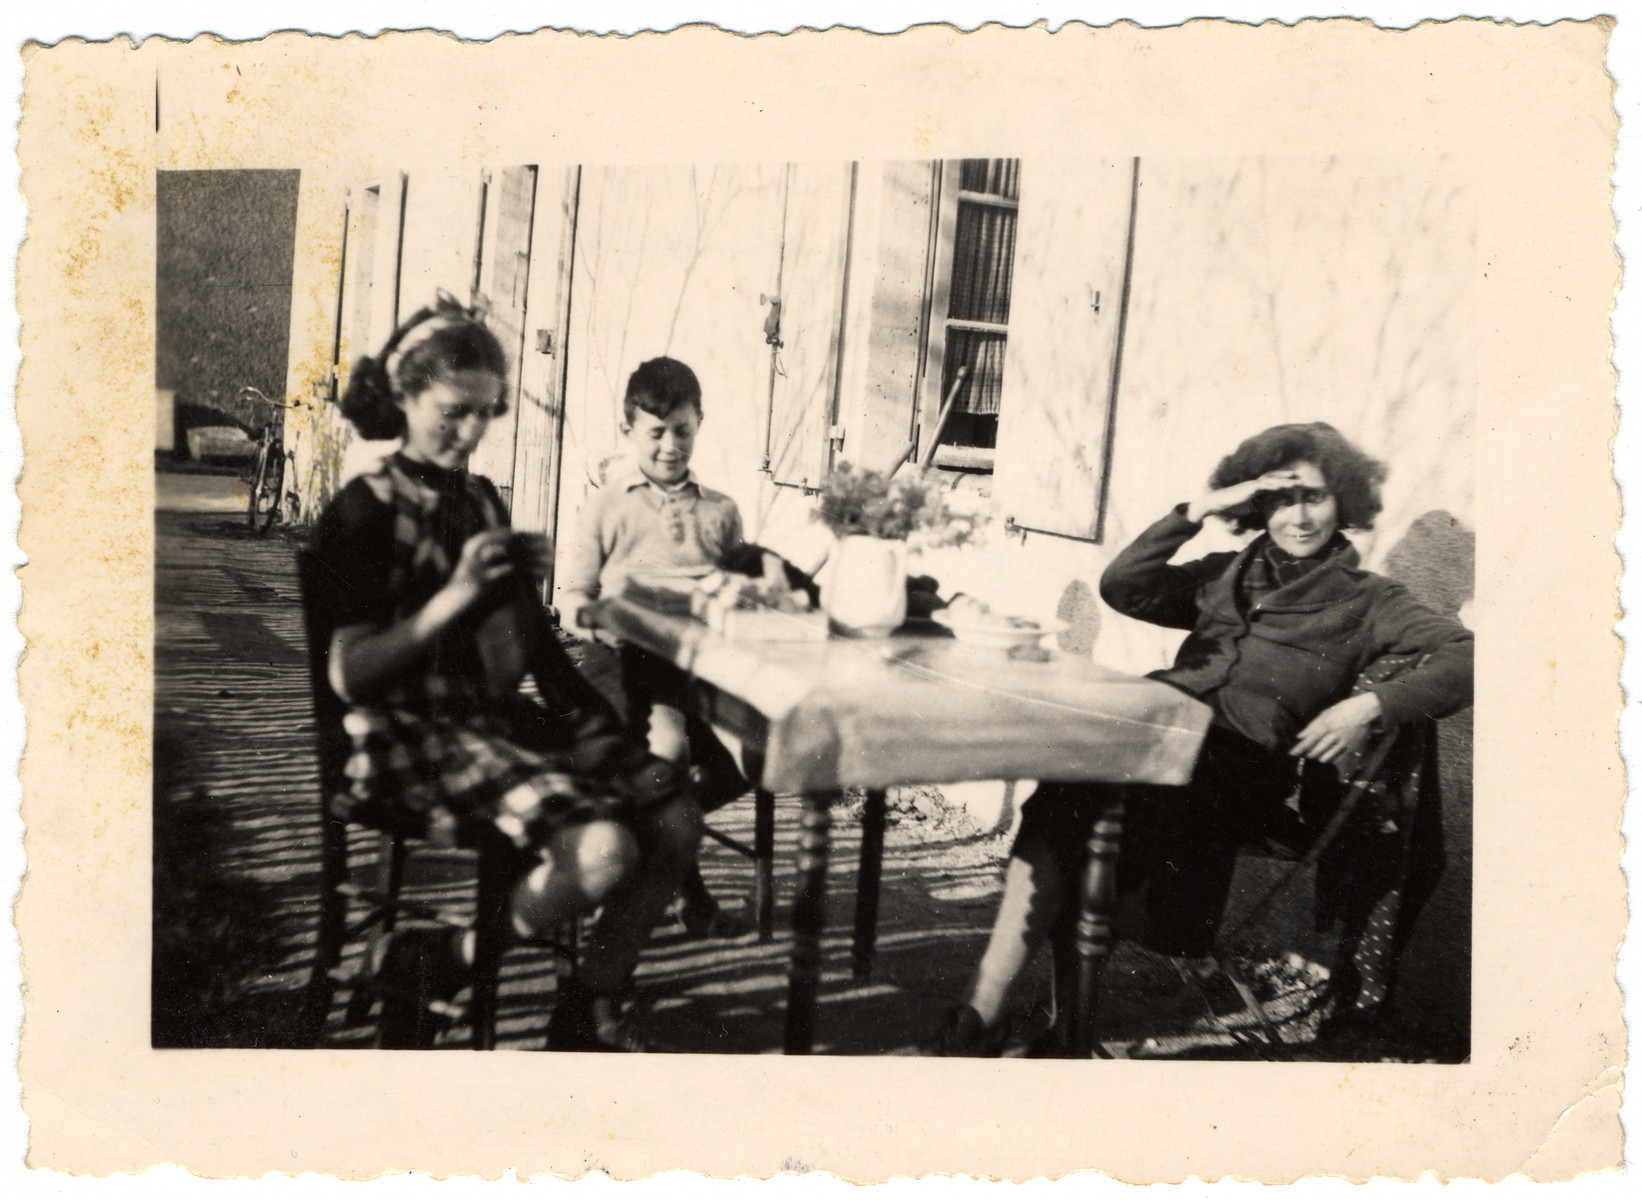 Portrait of the Meyer family sitting at an outdoor table in Chasseneuil, Vienne, France.